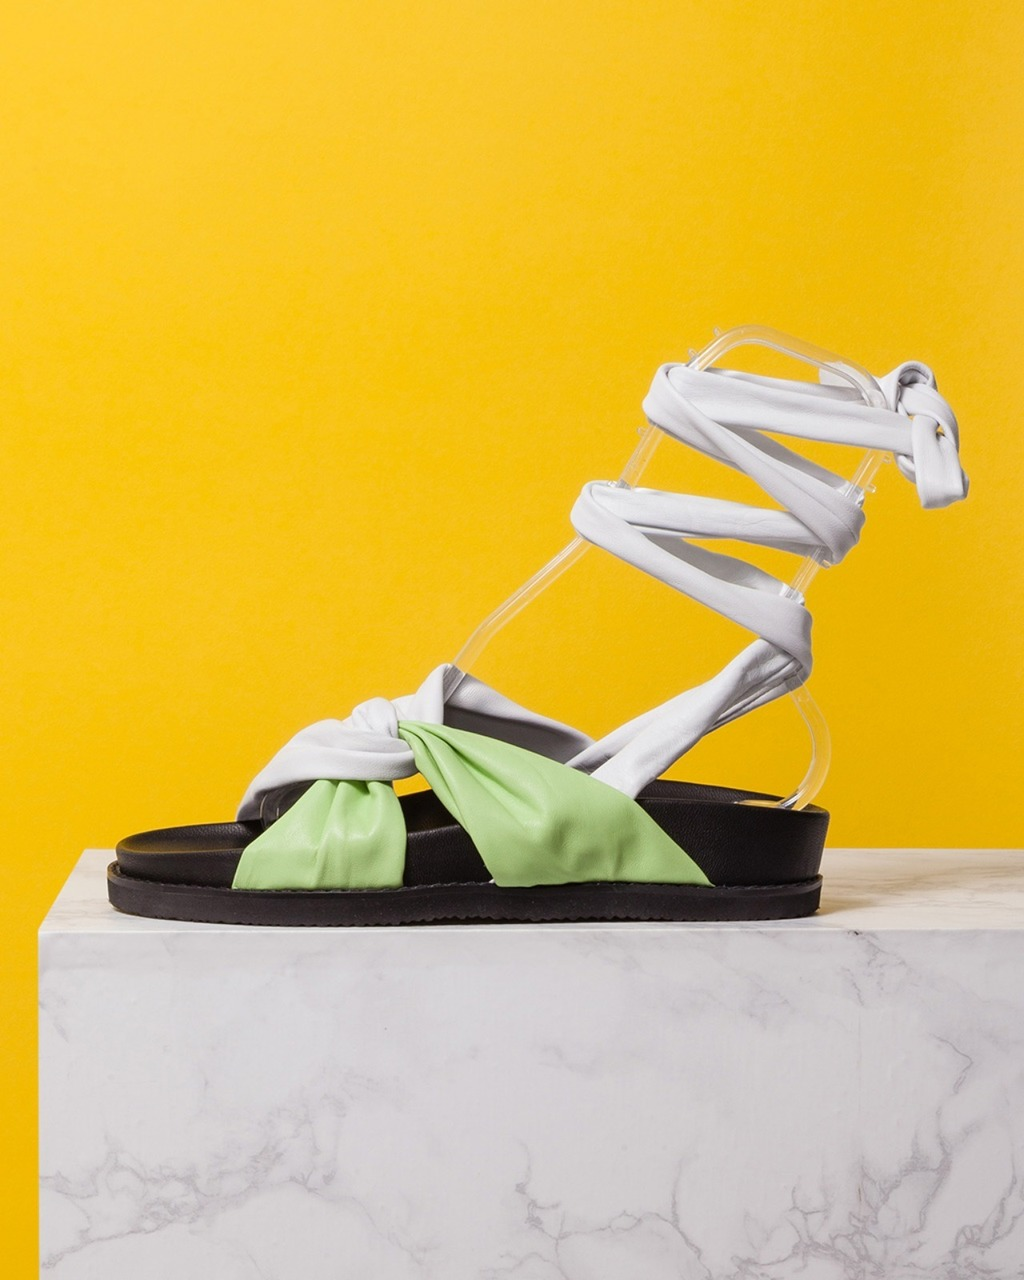 DORATORE Fiori Lime - Women's Shoes : Republic of Korea